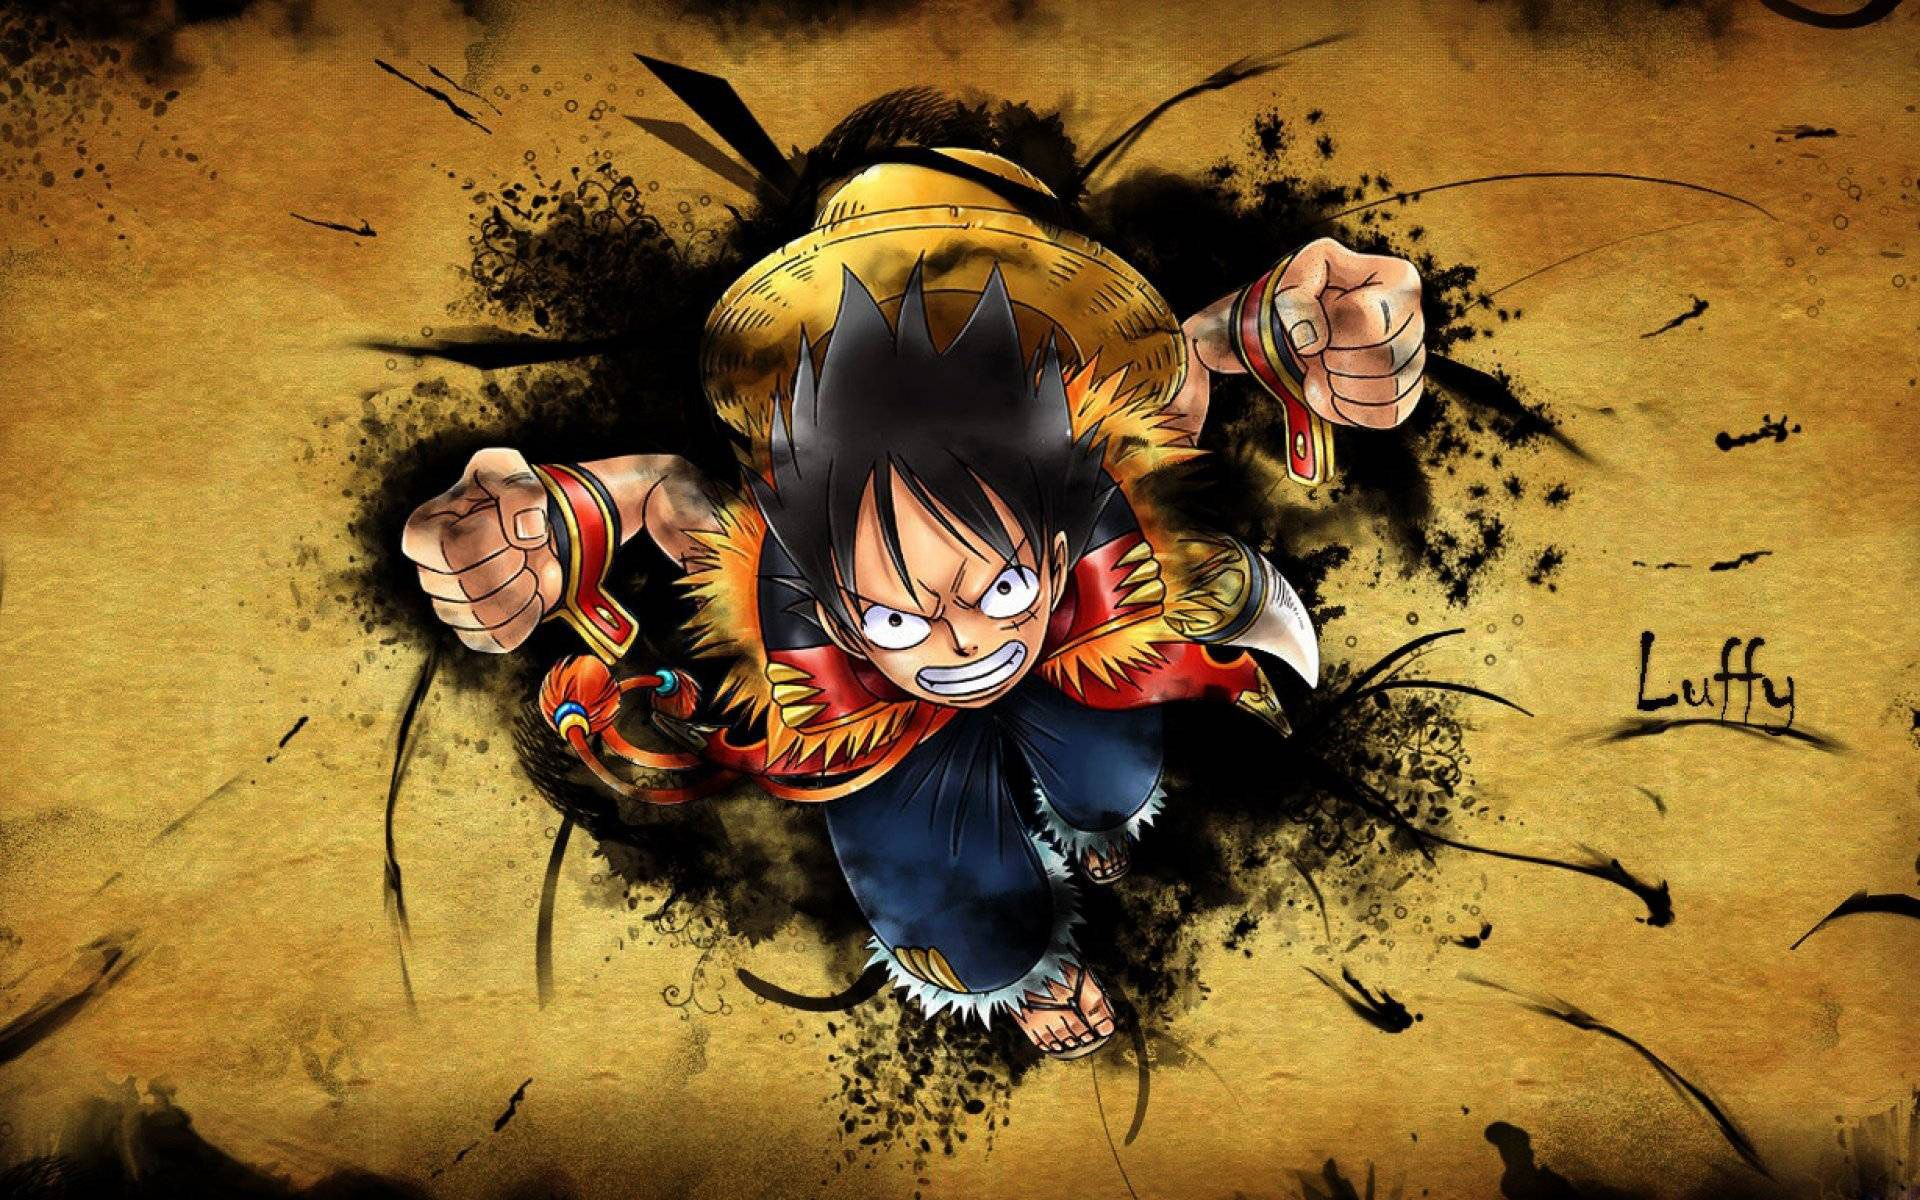 One Piece Background Desktop Wallpapers Backgrounds Images Anime Wallpaper One Piece Luffy World Wallpaper